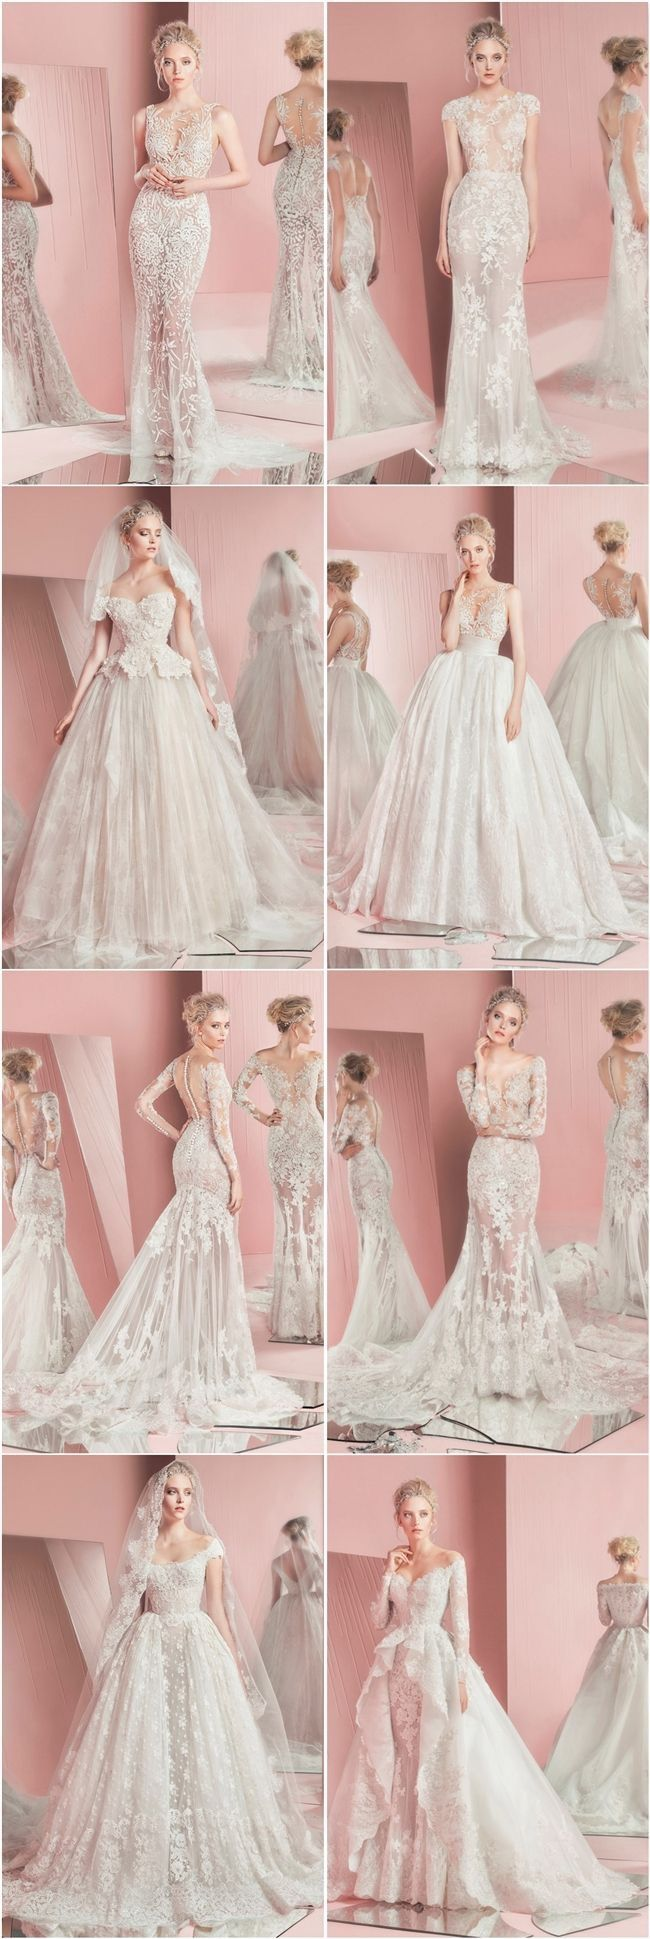 35 best Wedding dresses images on Pinterest | Vestidos de noche ...